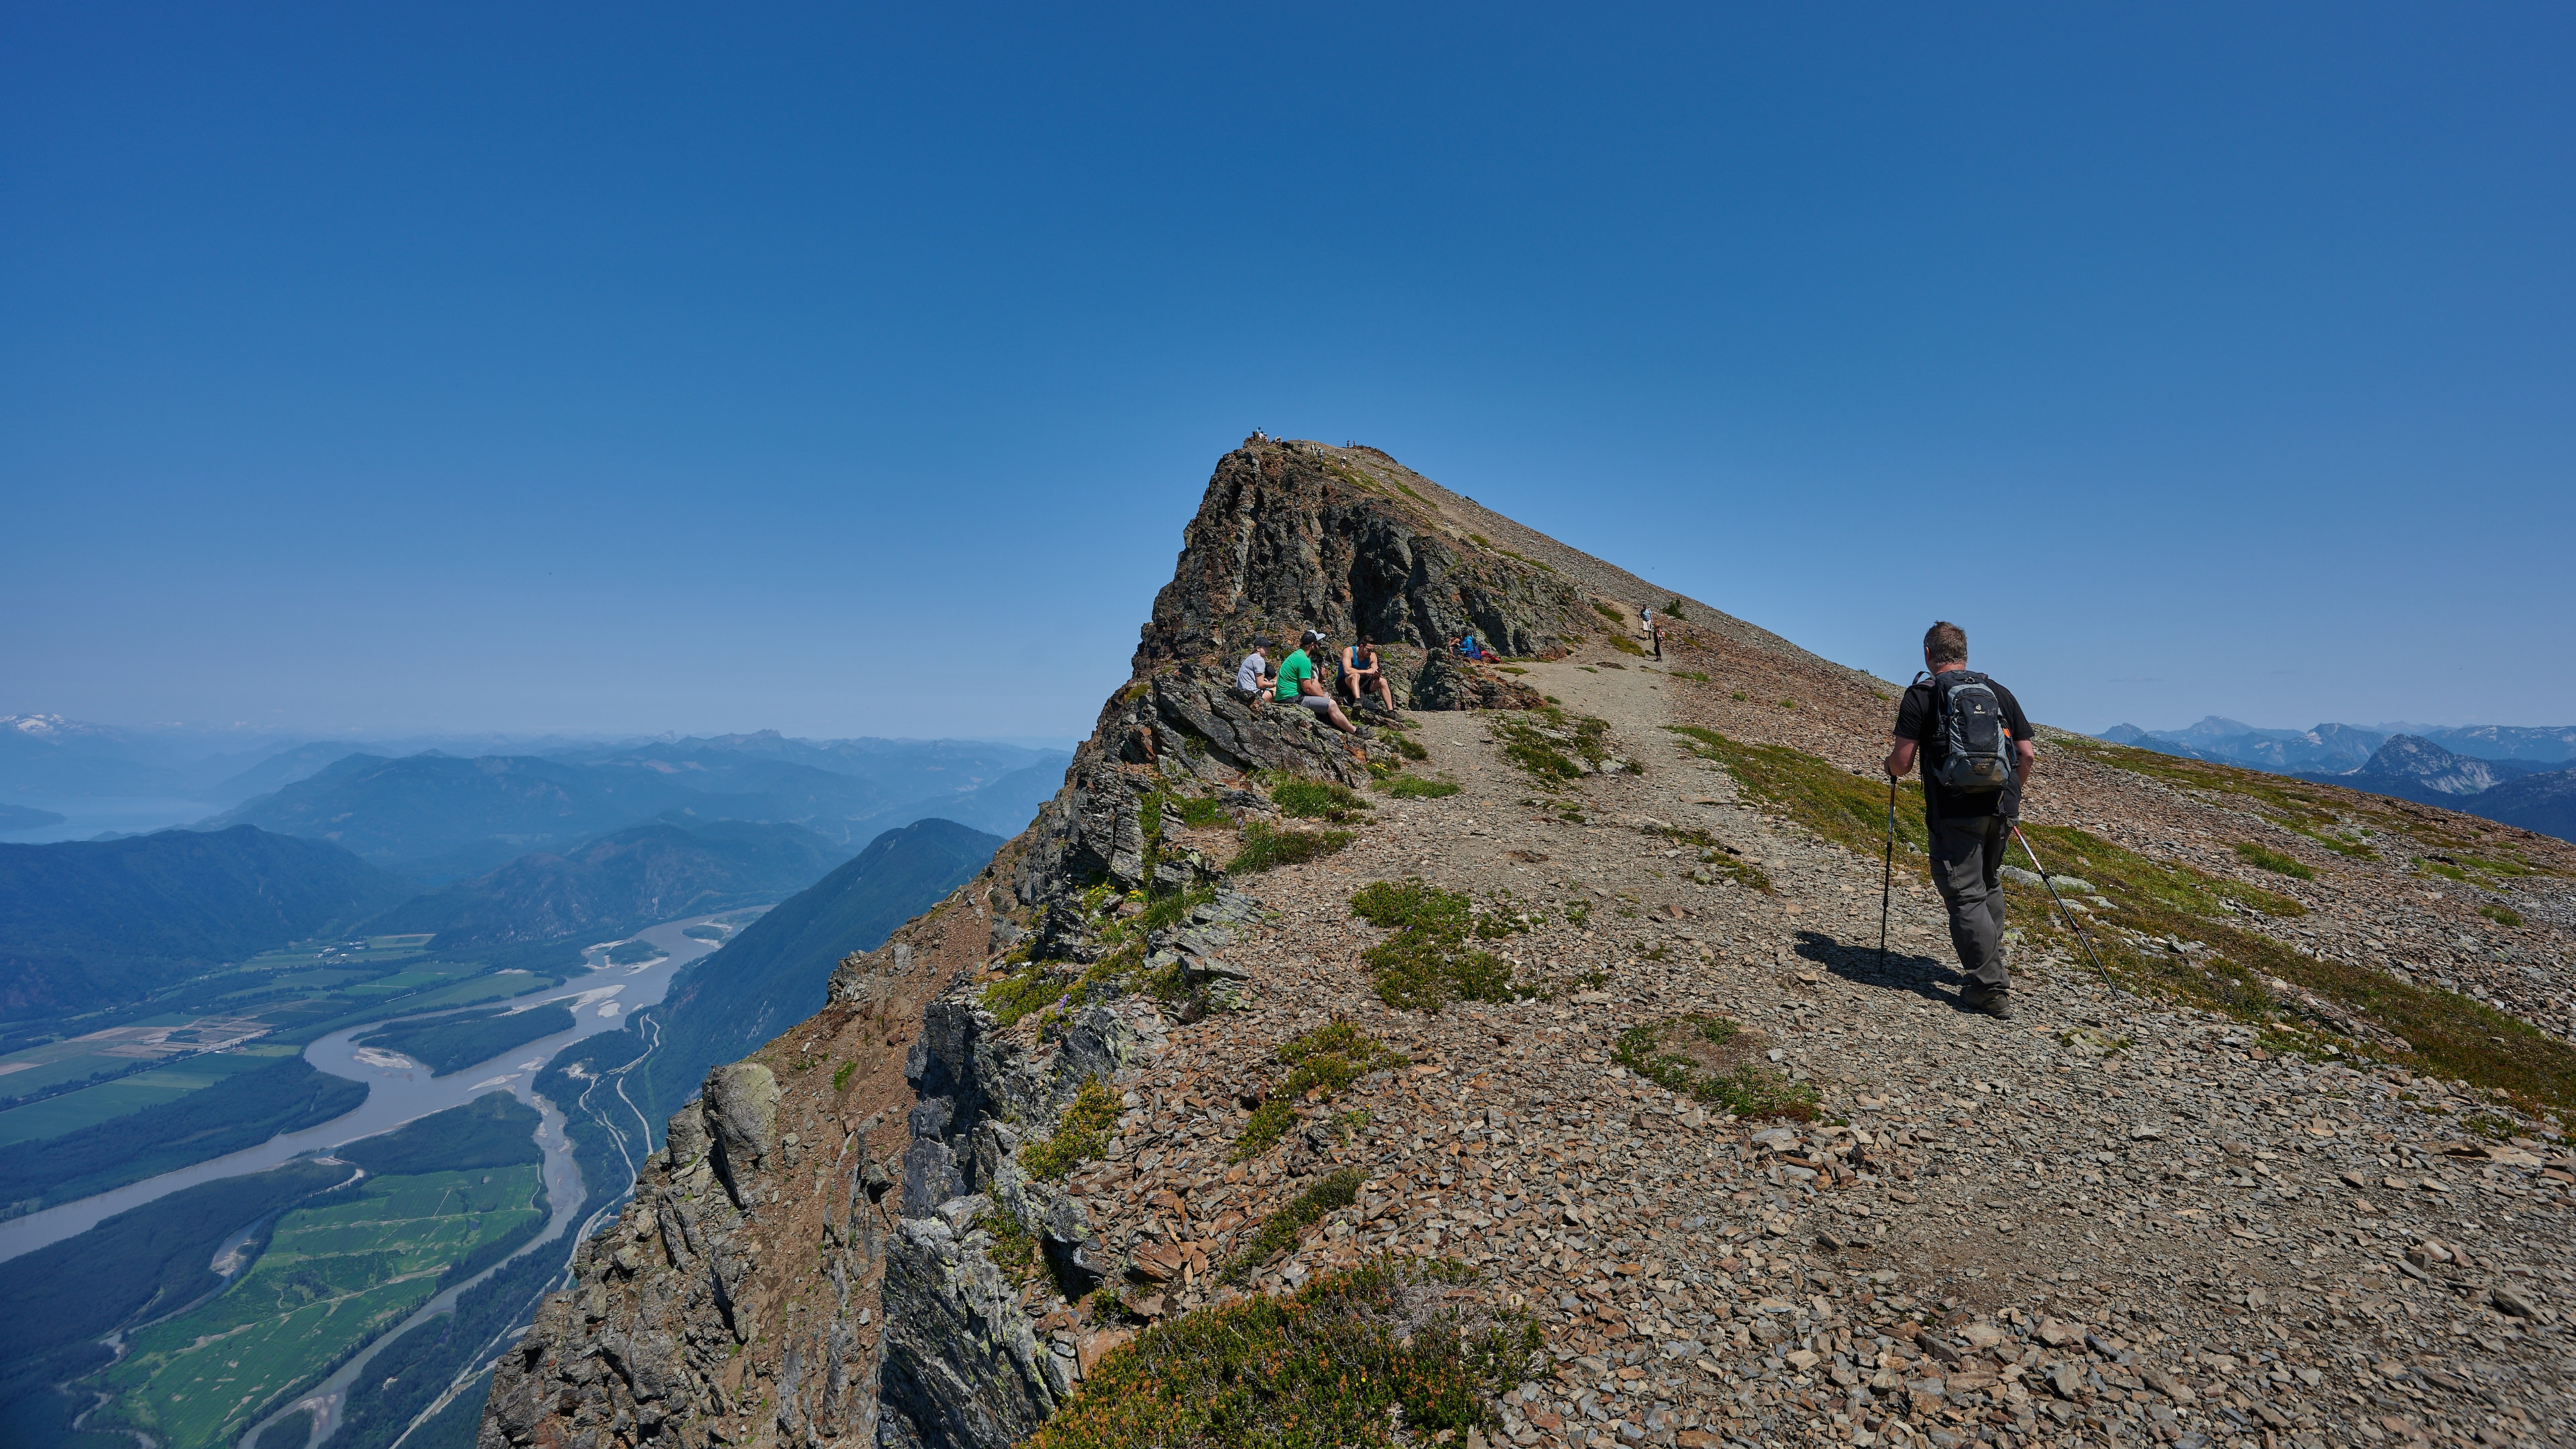 Cheam Peak Hike - Chilliwack BC Canada